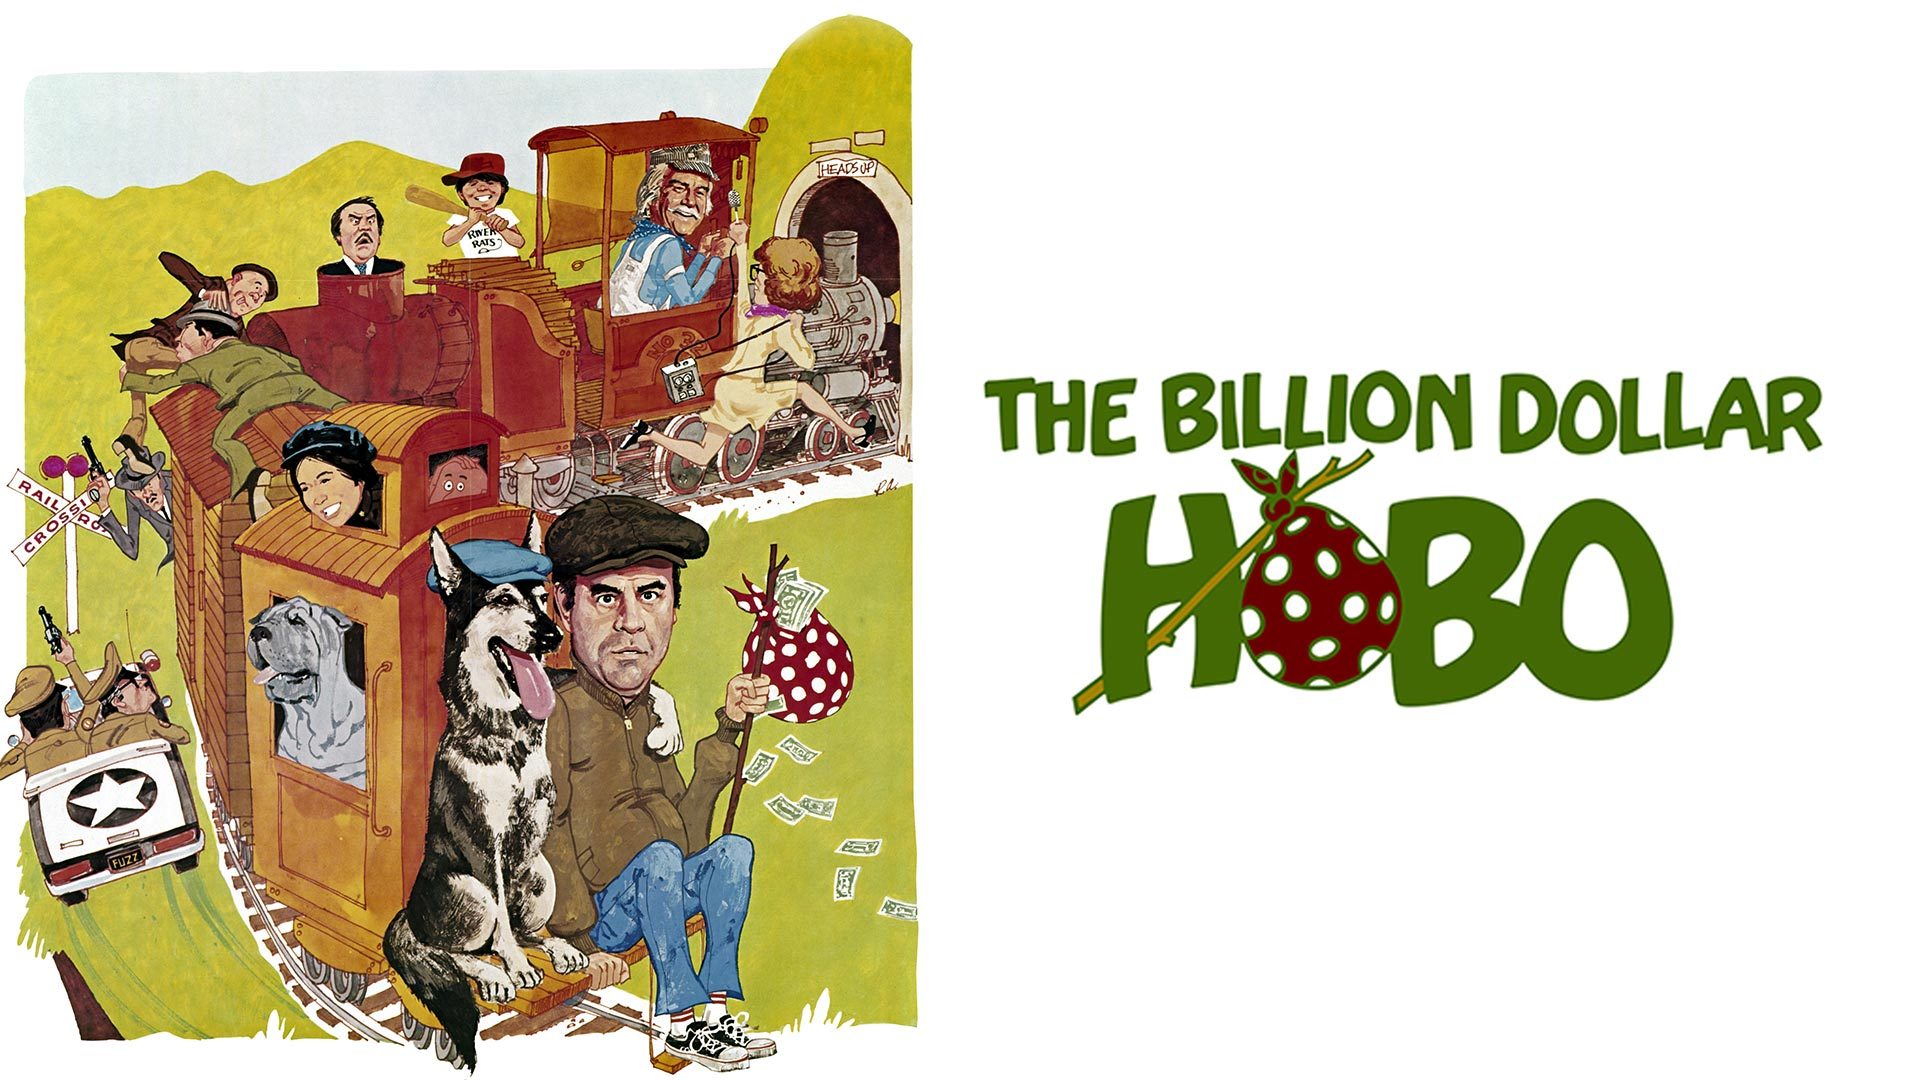 Billion Dollar Hobo